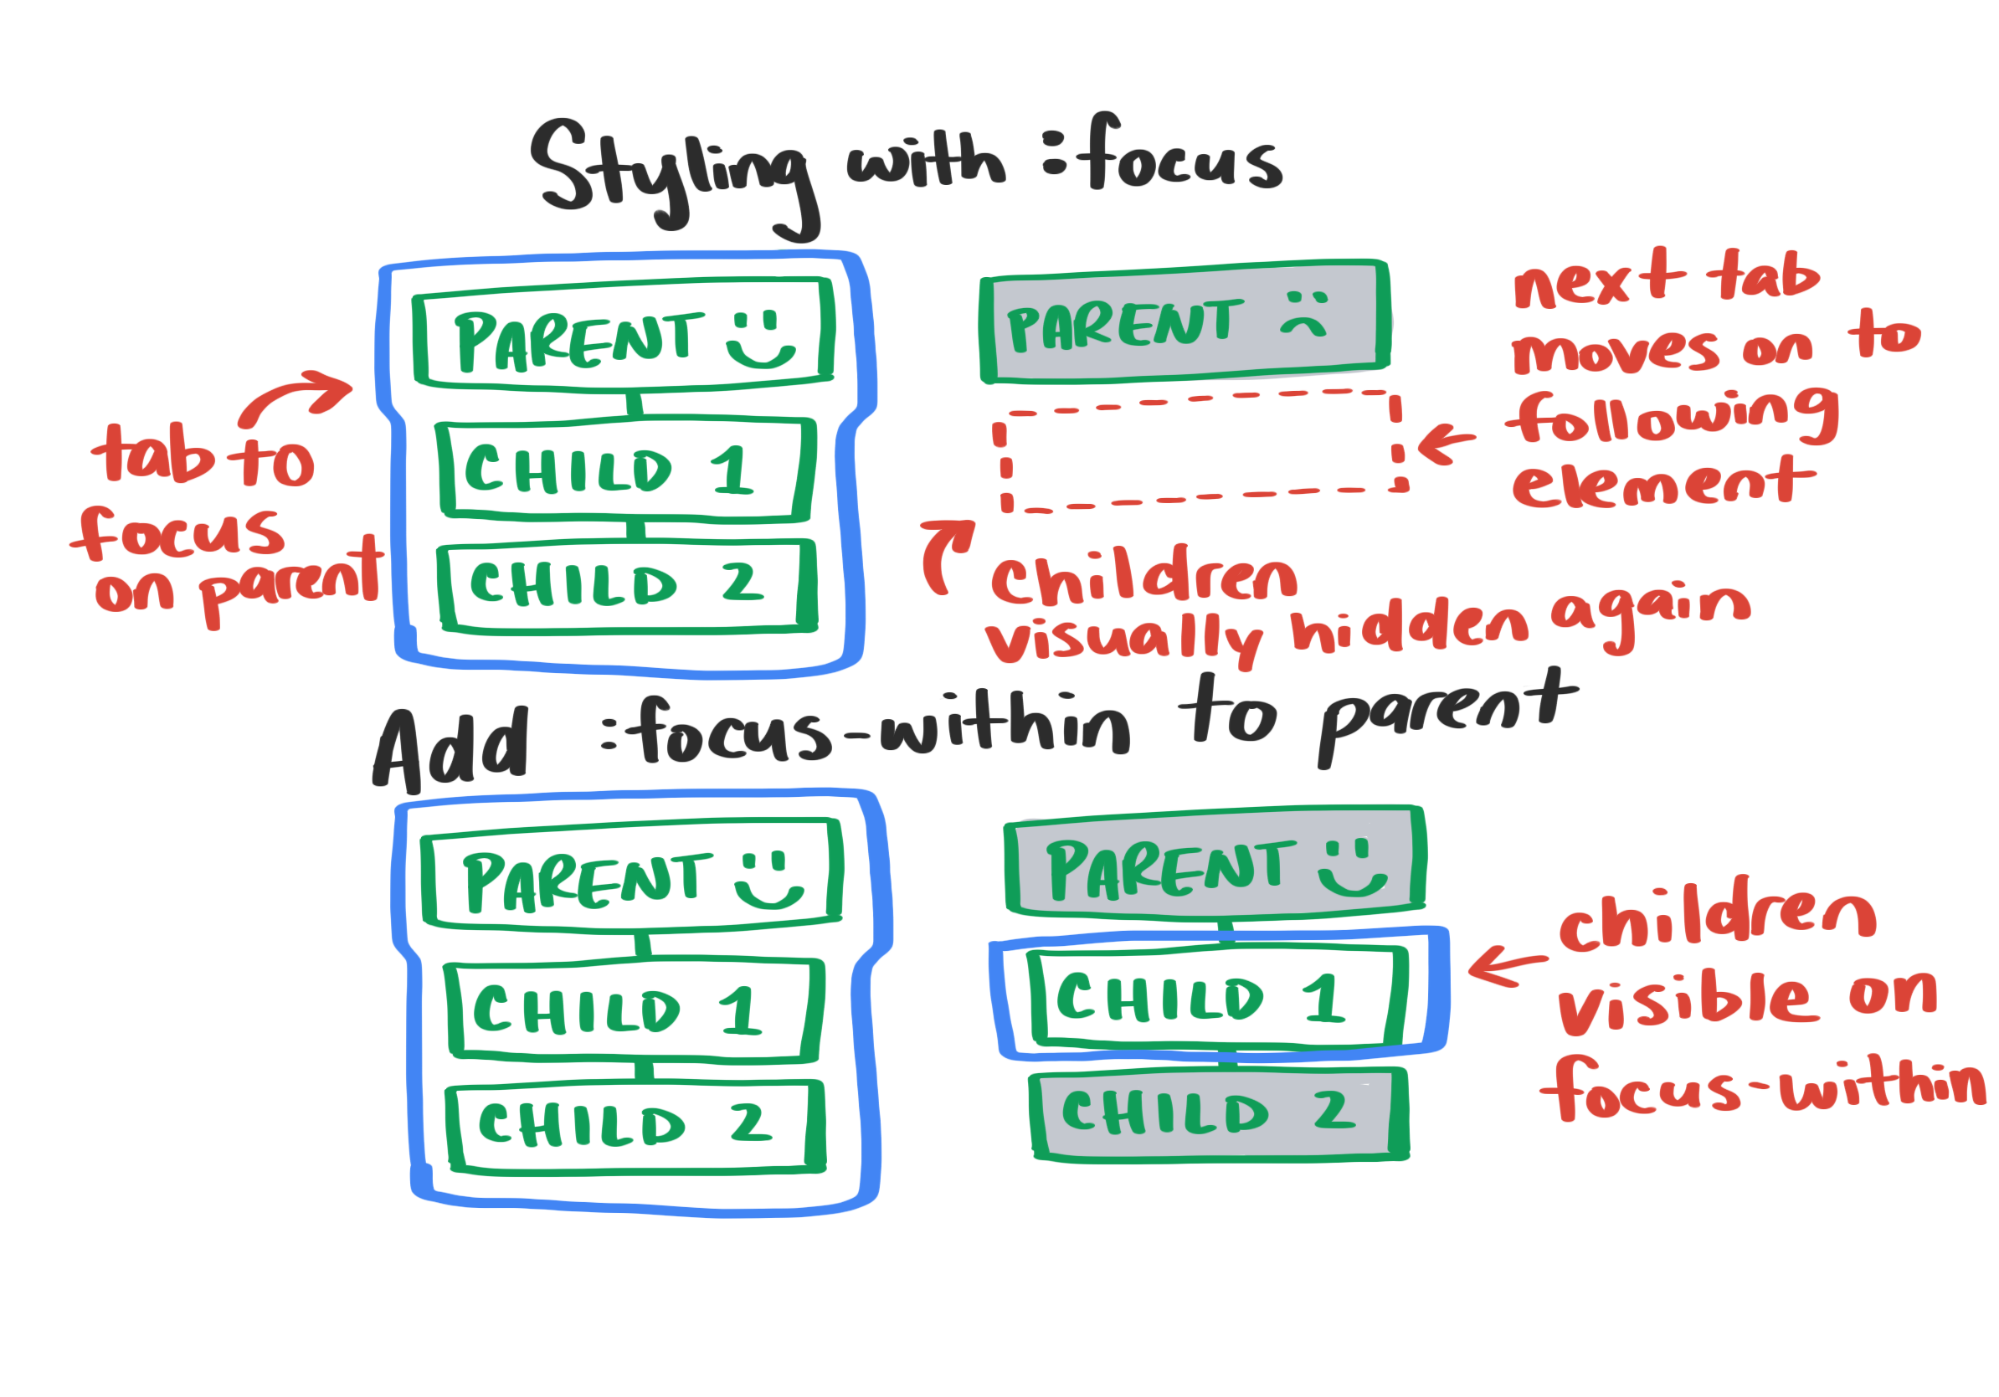 An illustration showing the difference in behavior between focus and focus-within.